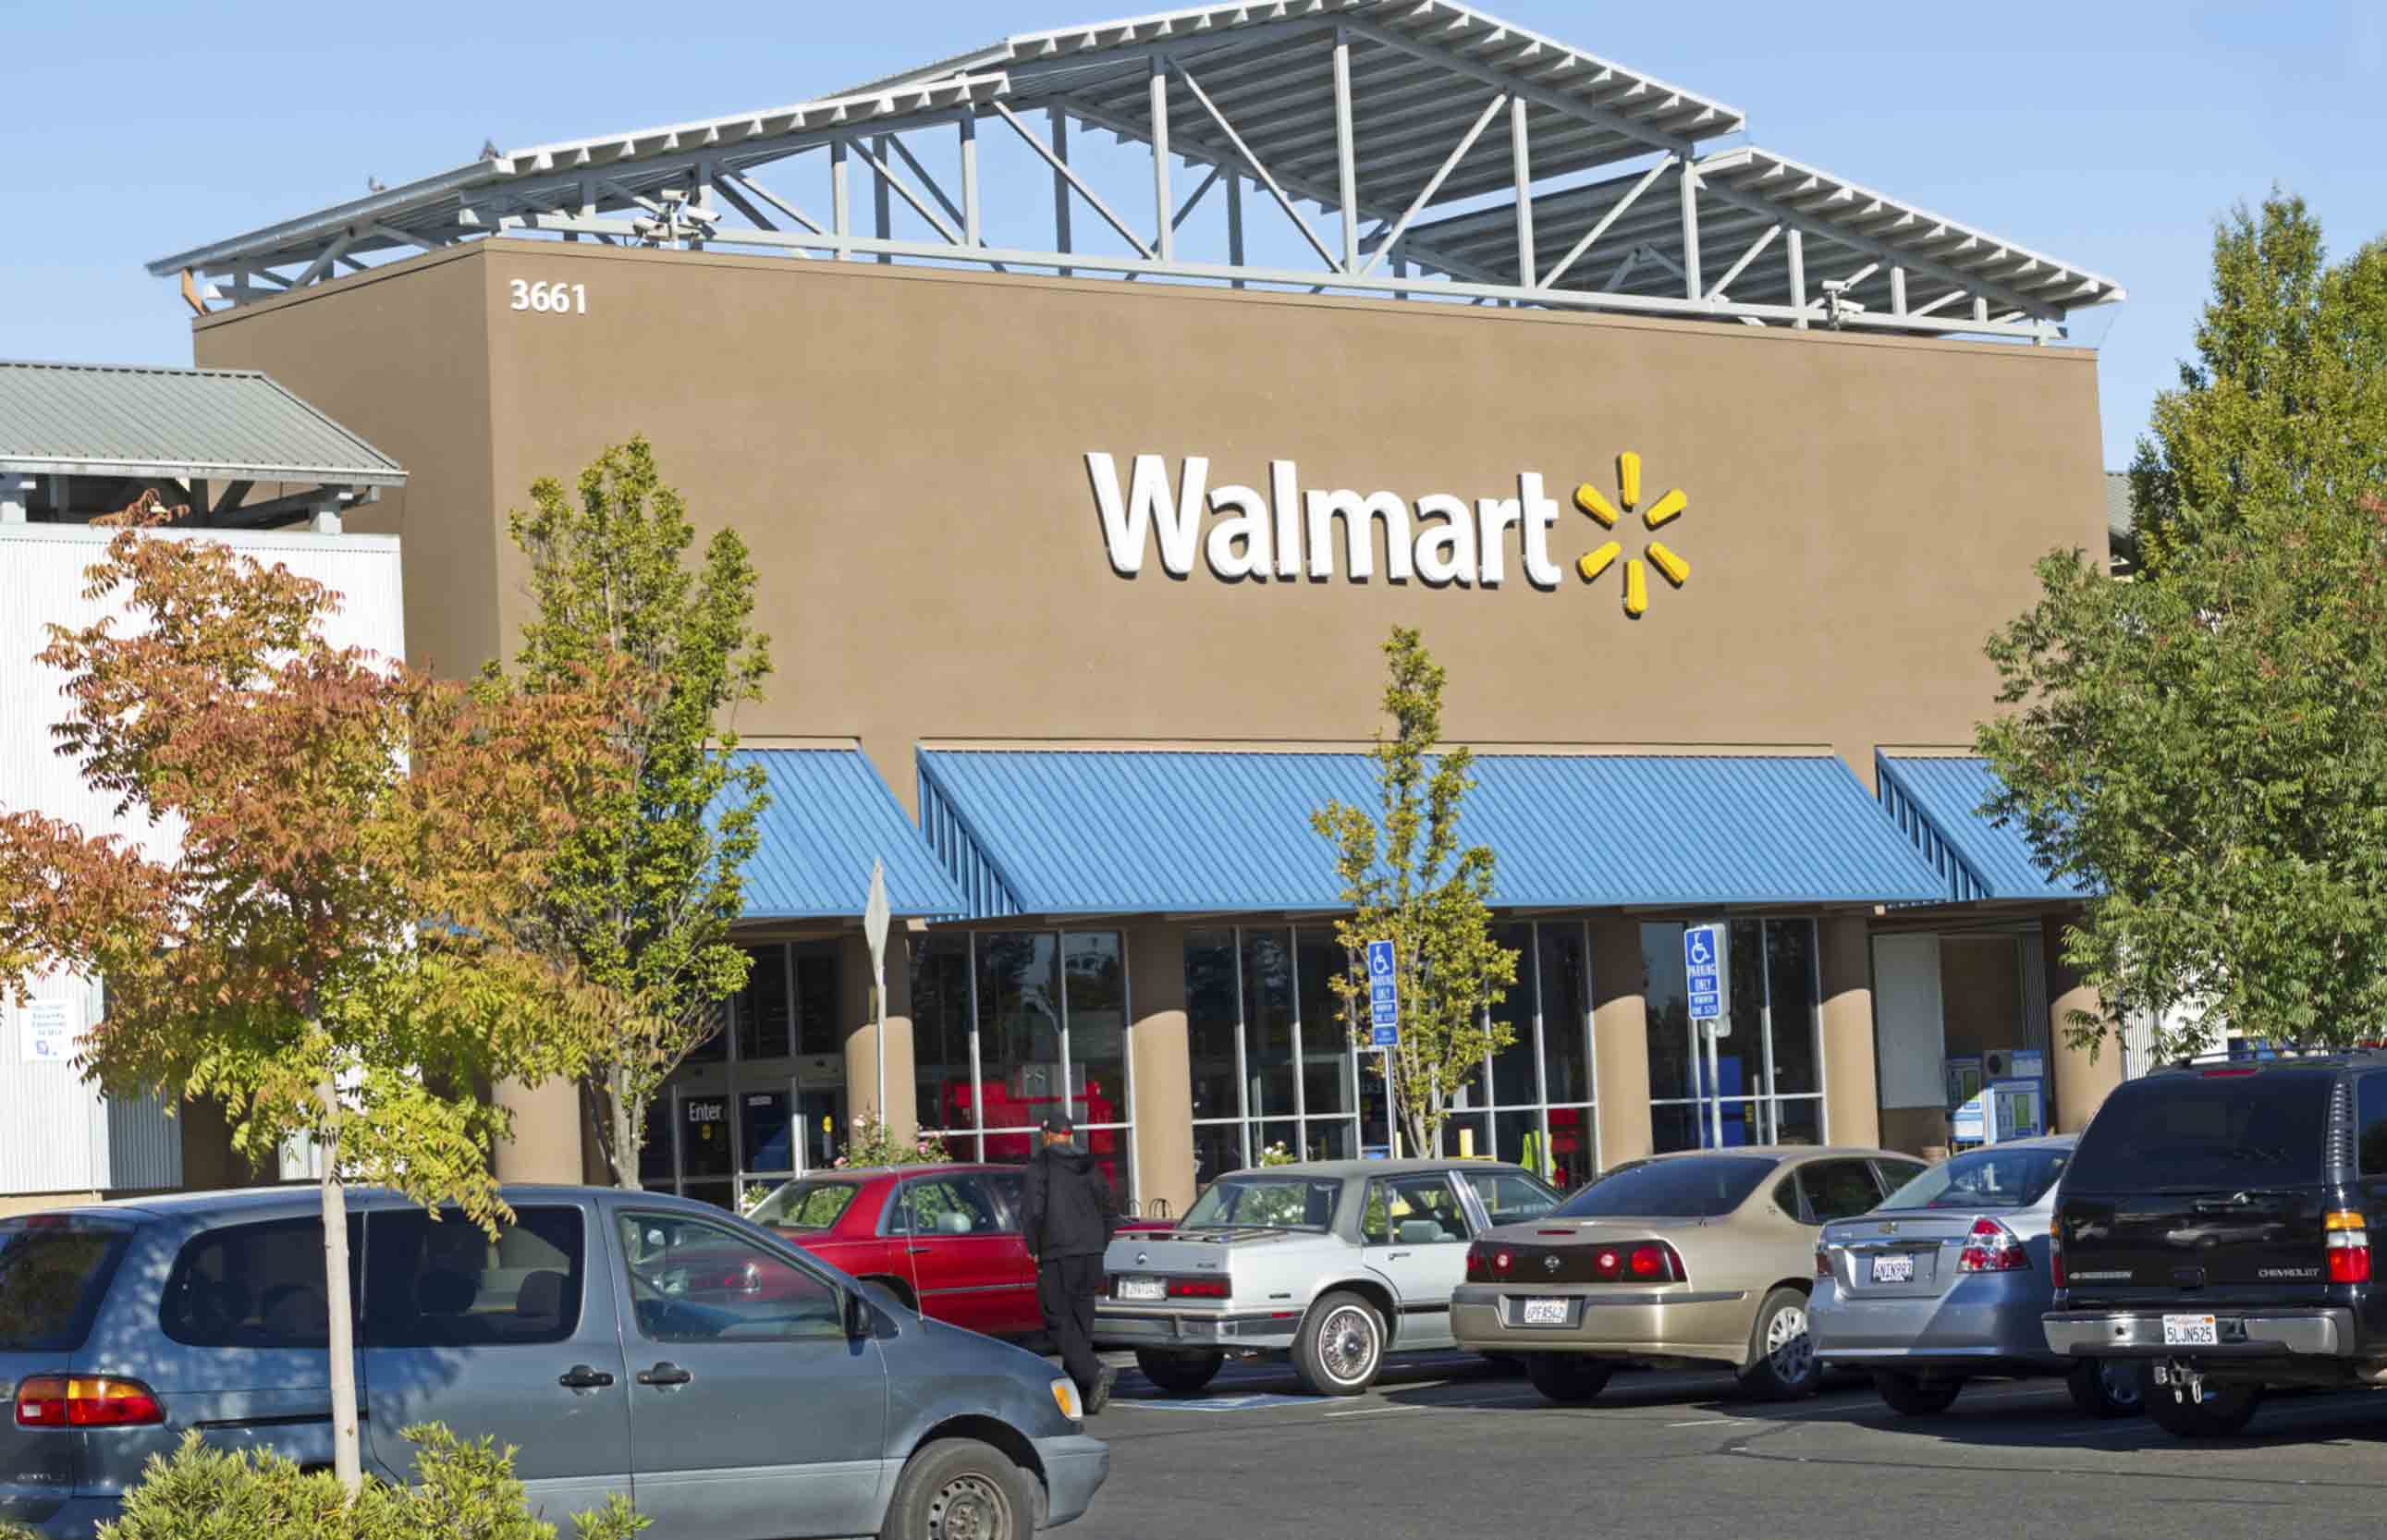 Wal Mart s New Rewards Program What You Need to Know